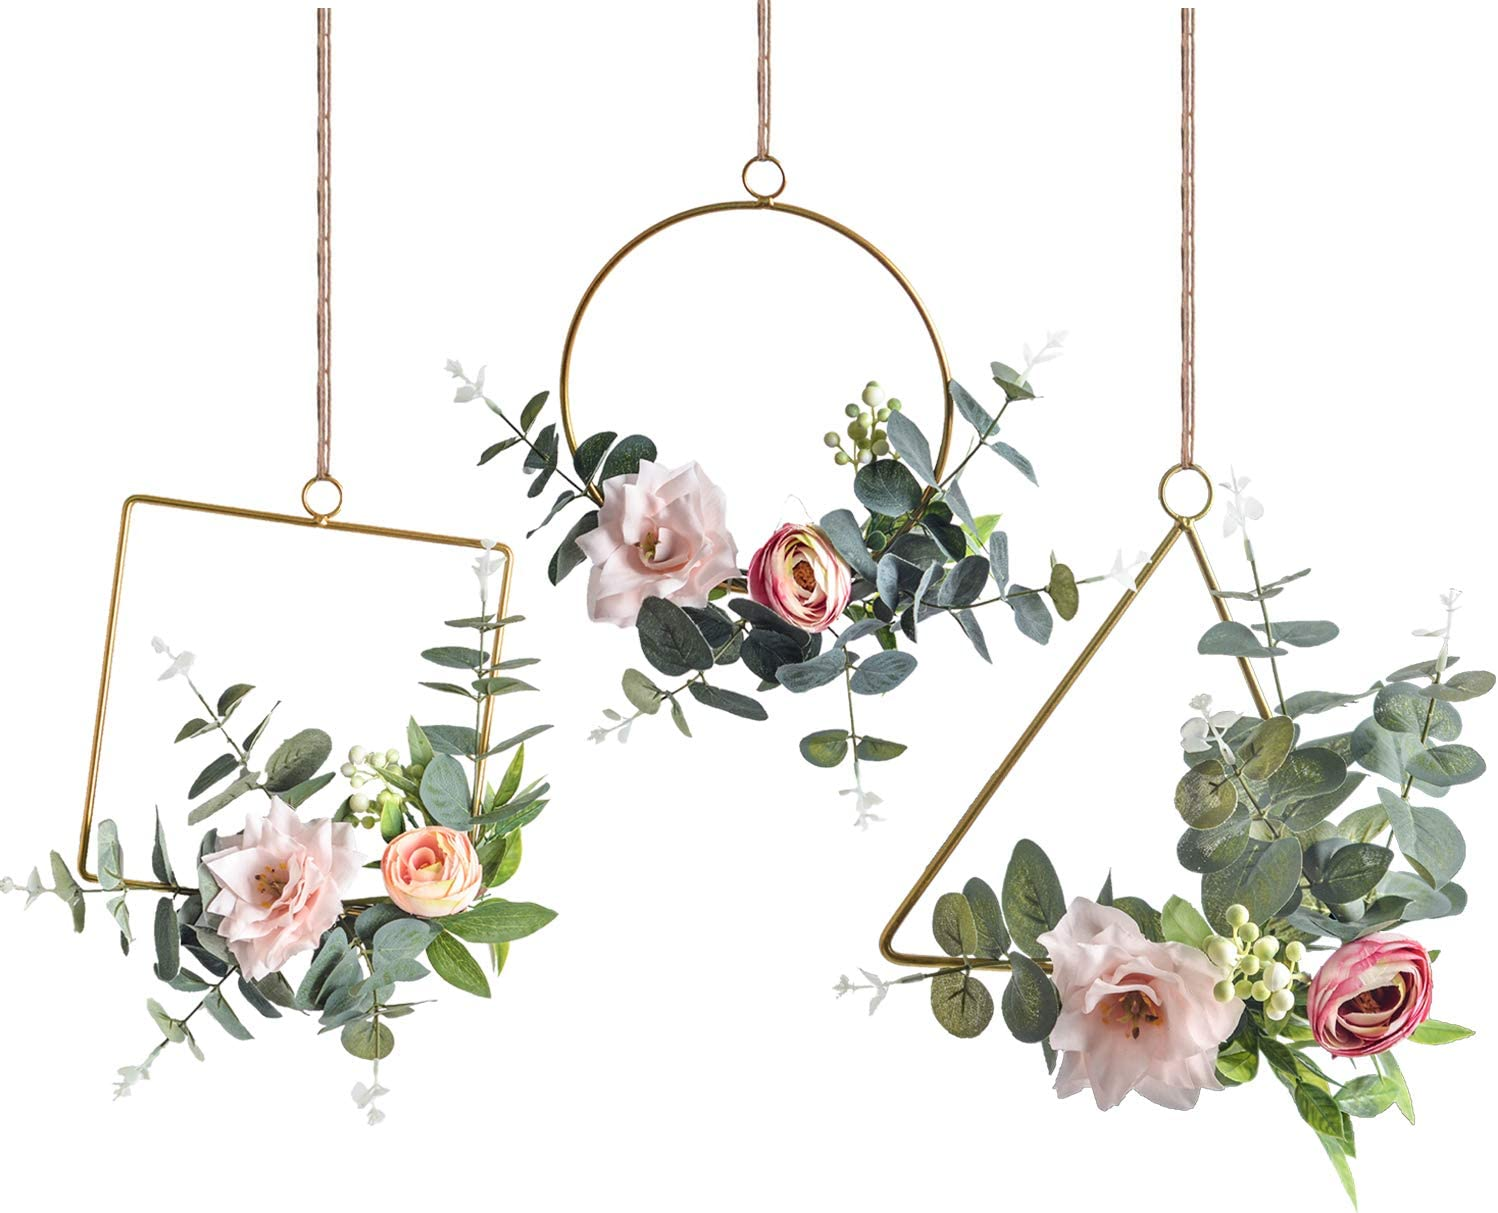 Pauwer Floral Hoop Wreath Set of Popular shop is the lowest price challenge New item Artificial Flower Wal 3 Hanging